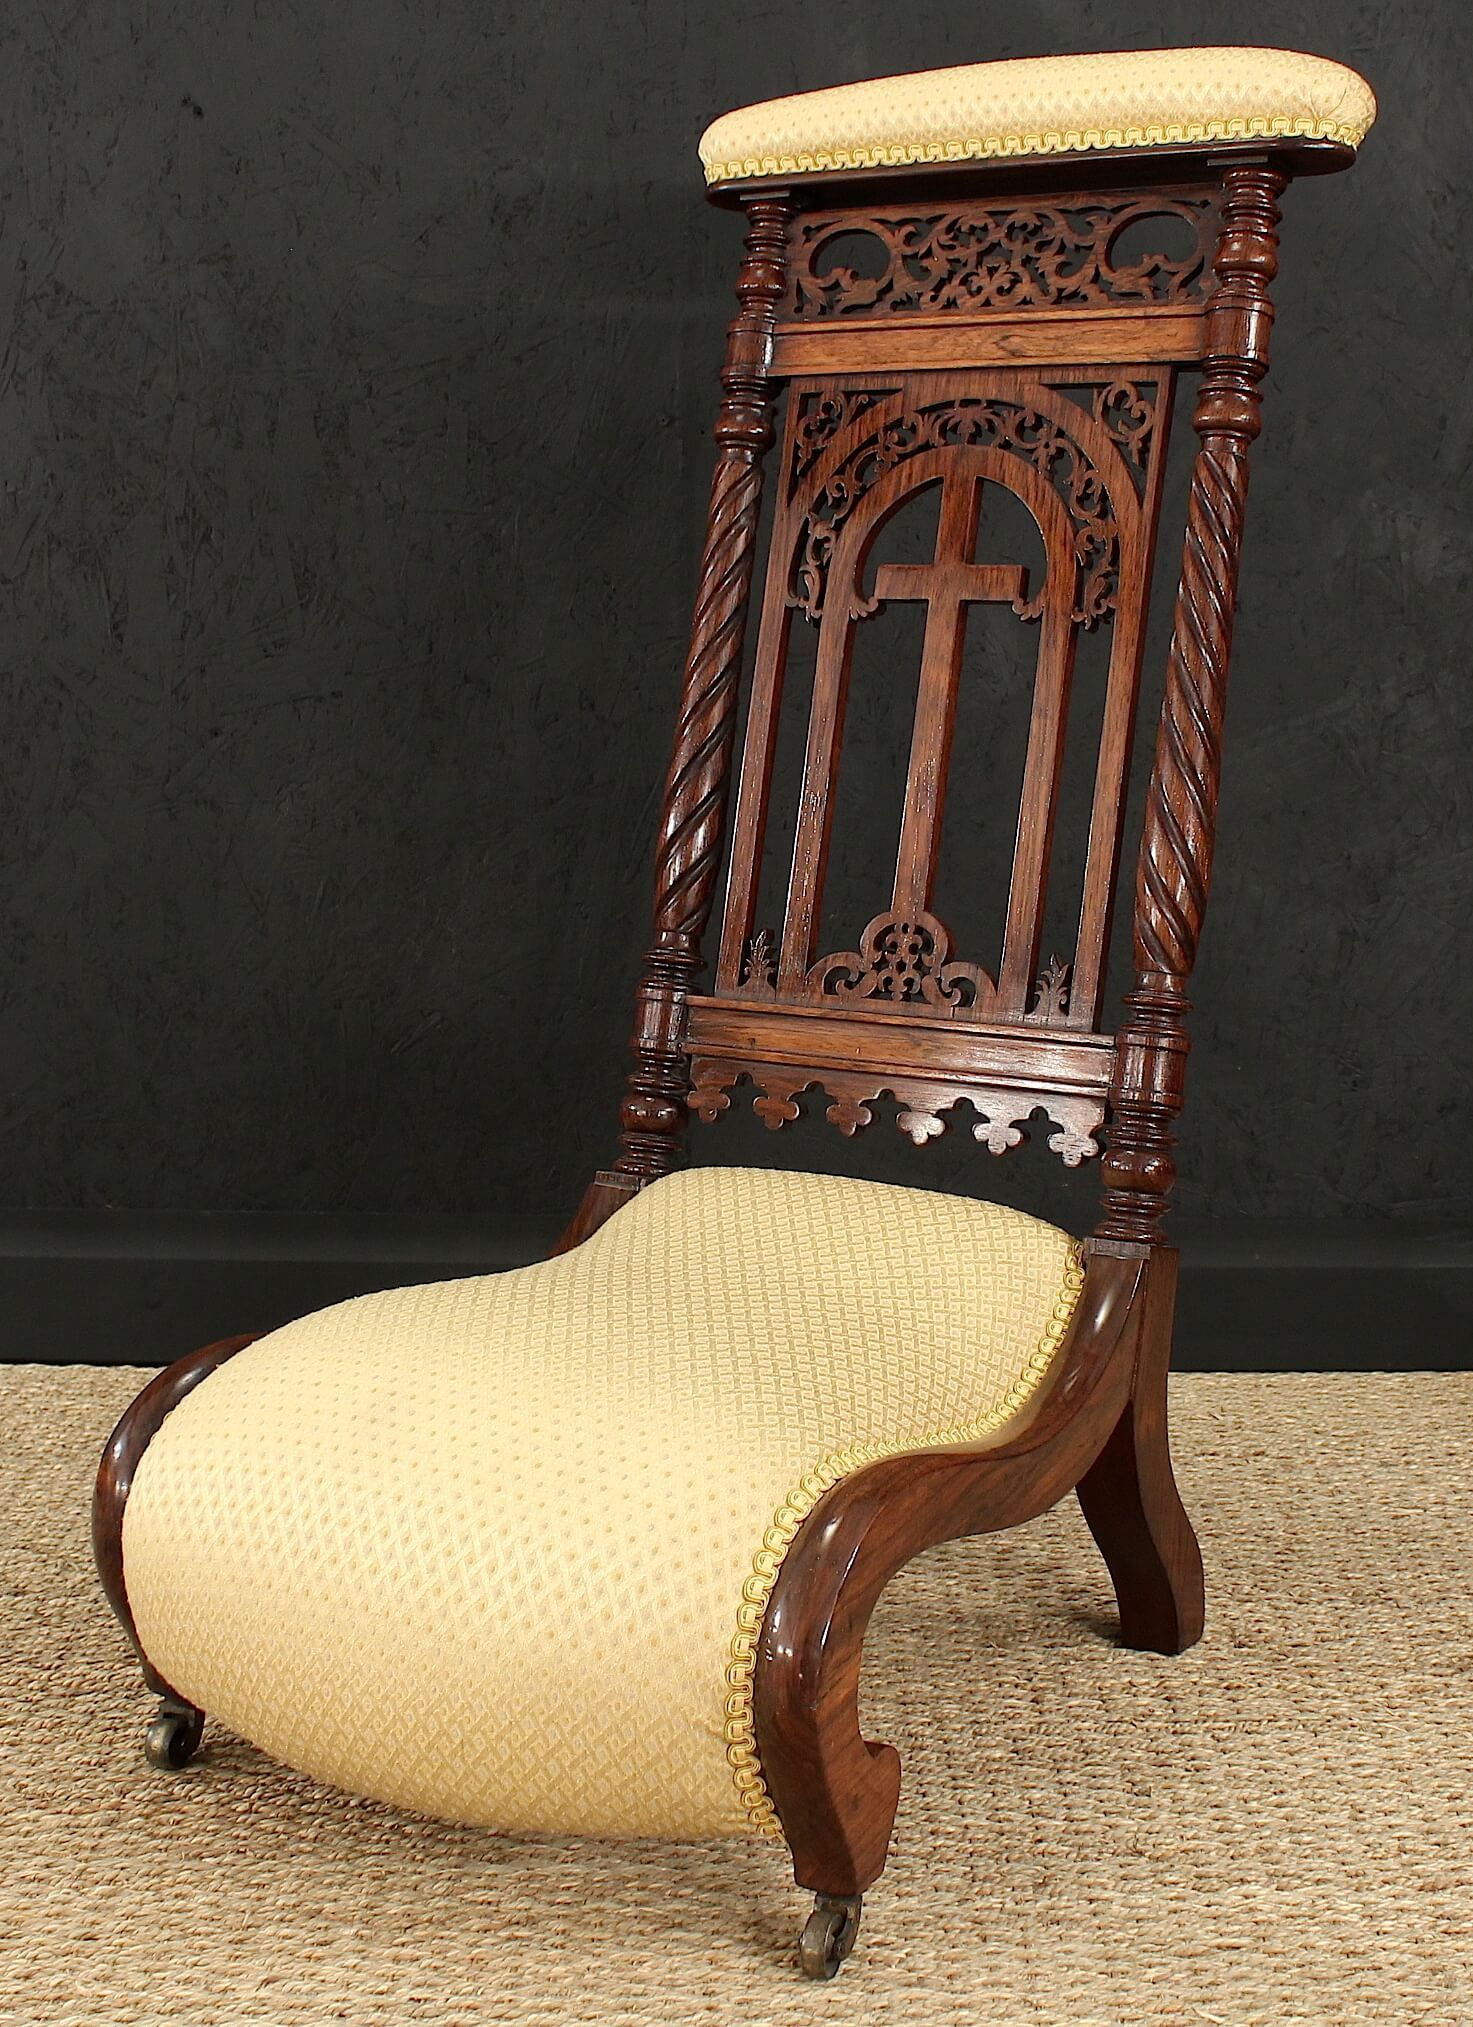 Rosewood Prie-dieu (Prayer Chair) - Gilboy's - Rosewood Prie-dieu (Prayer Chair) - Gilboy's Fall On Your Knees